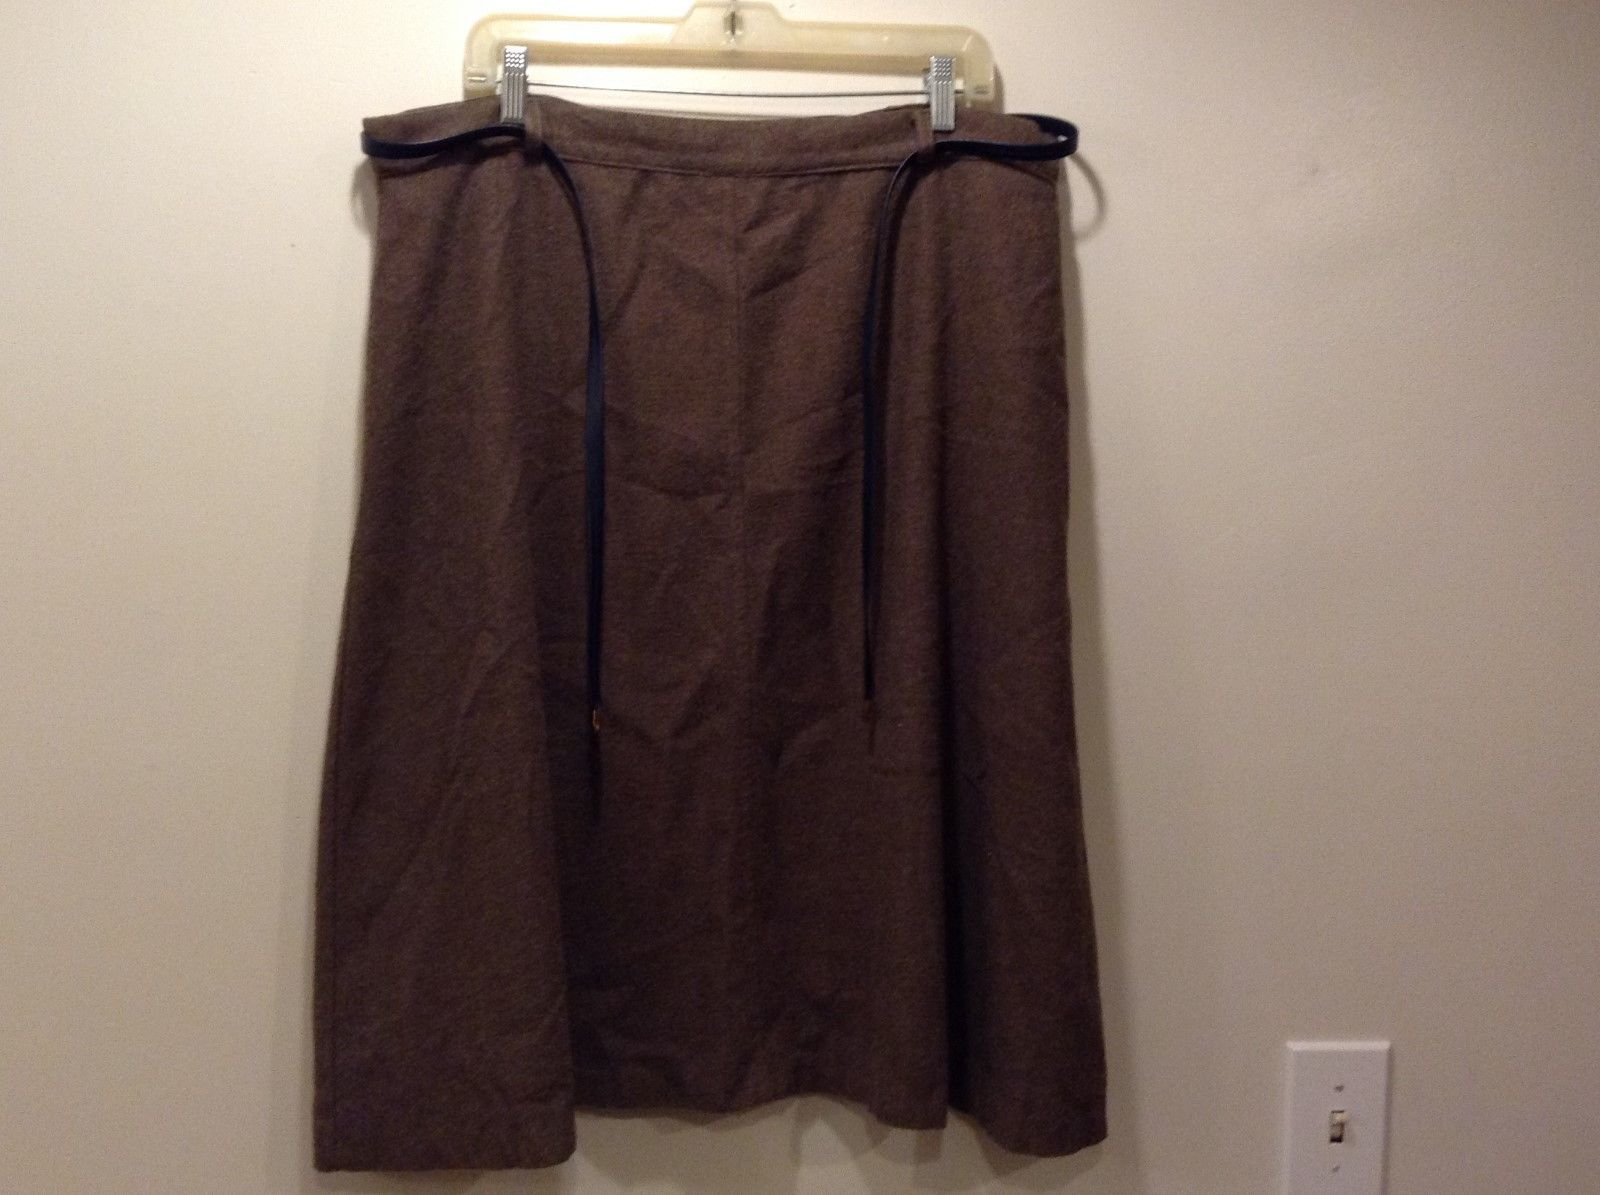 ILGWU Dark Brown Warm Skirt Sz M